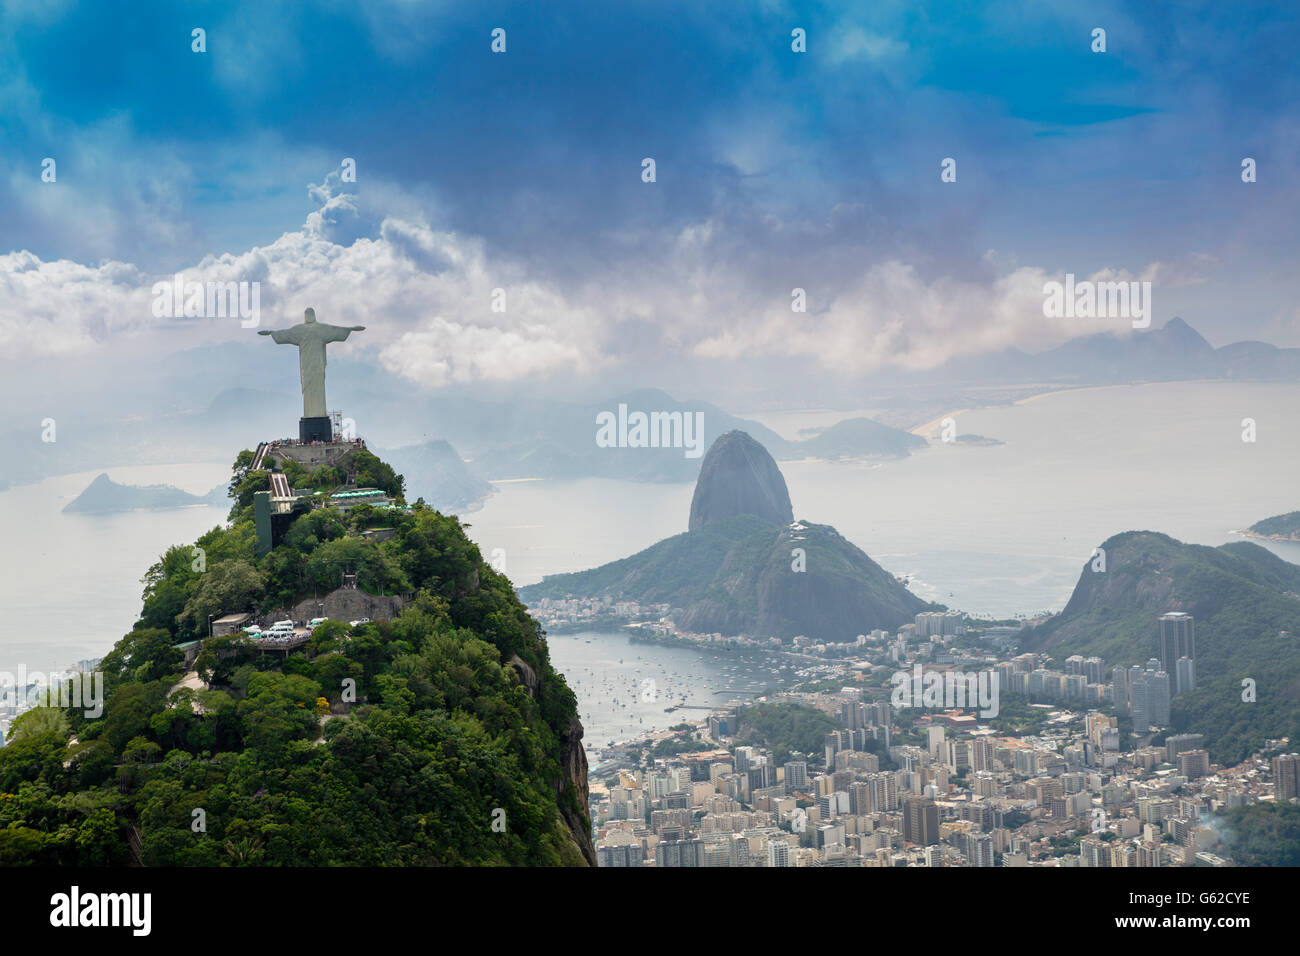 UNESCO World Heritage Listed landscape of Rio de Janeiro, with Christ the Redeemer (Cristo Redentor) statue and - Stock Image